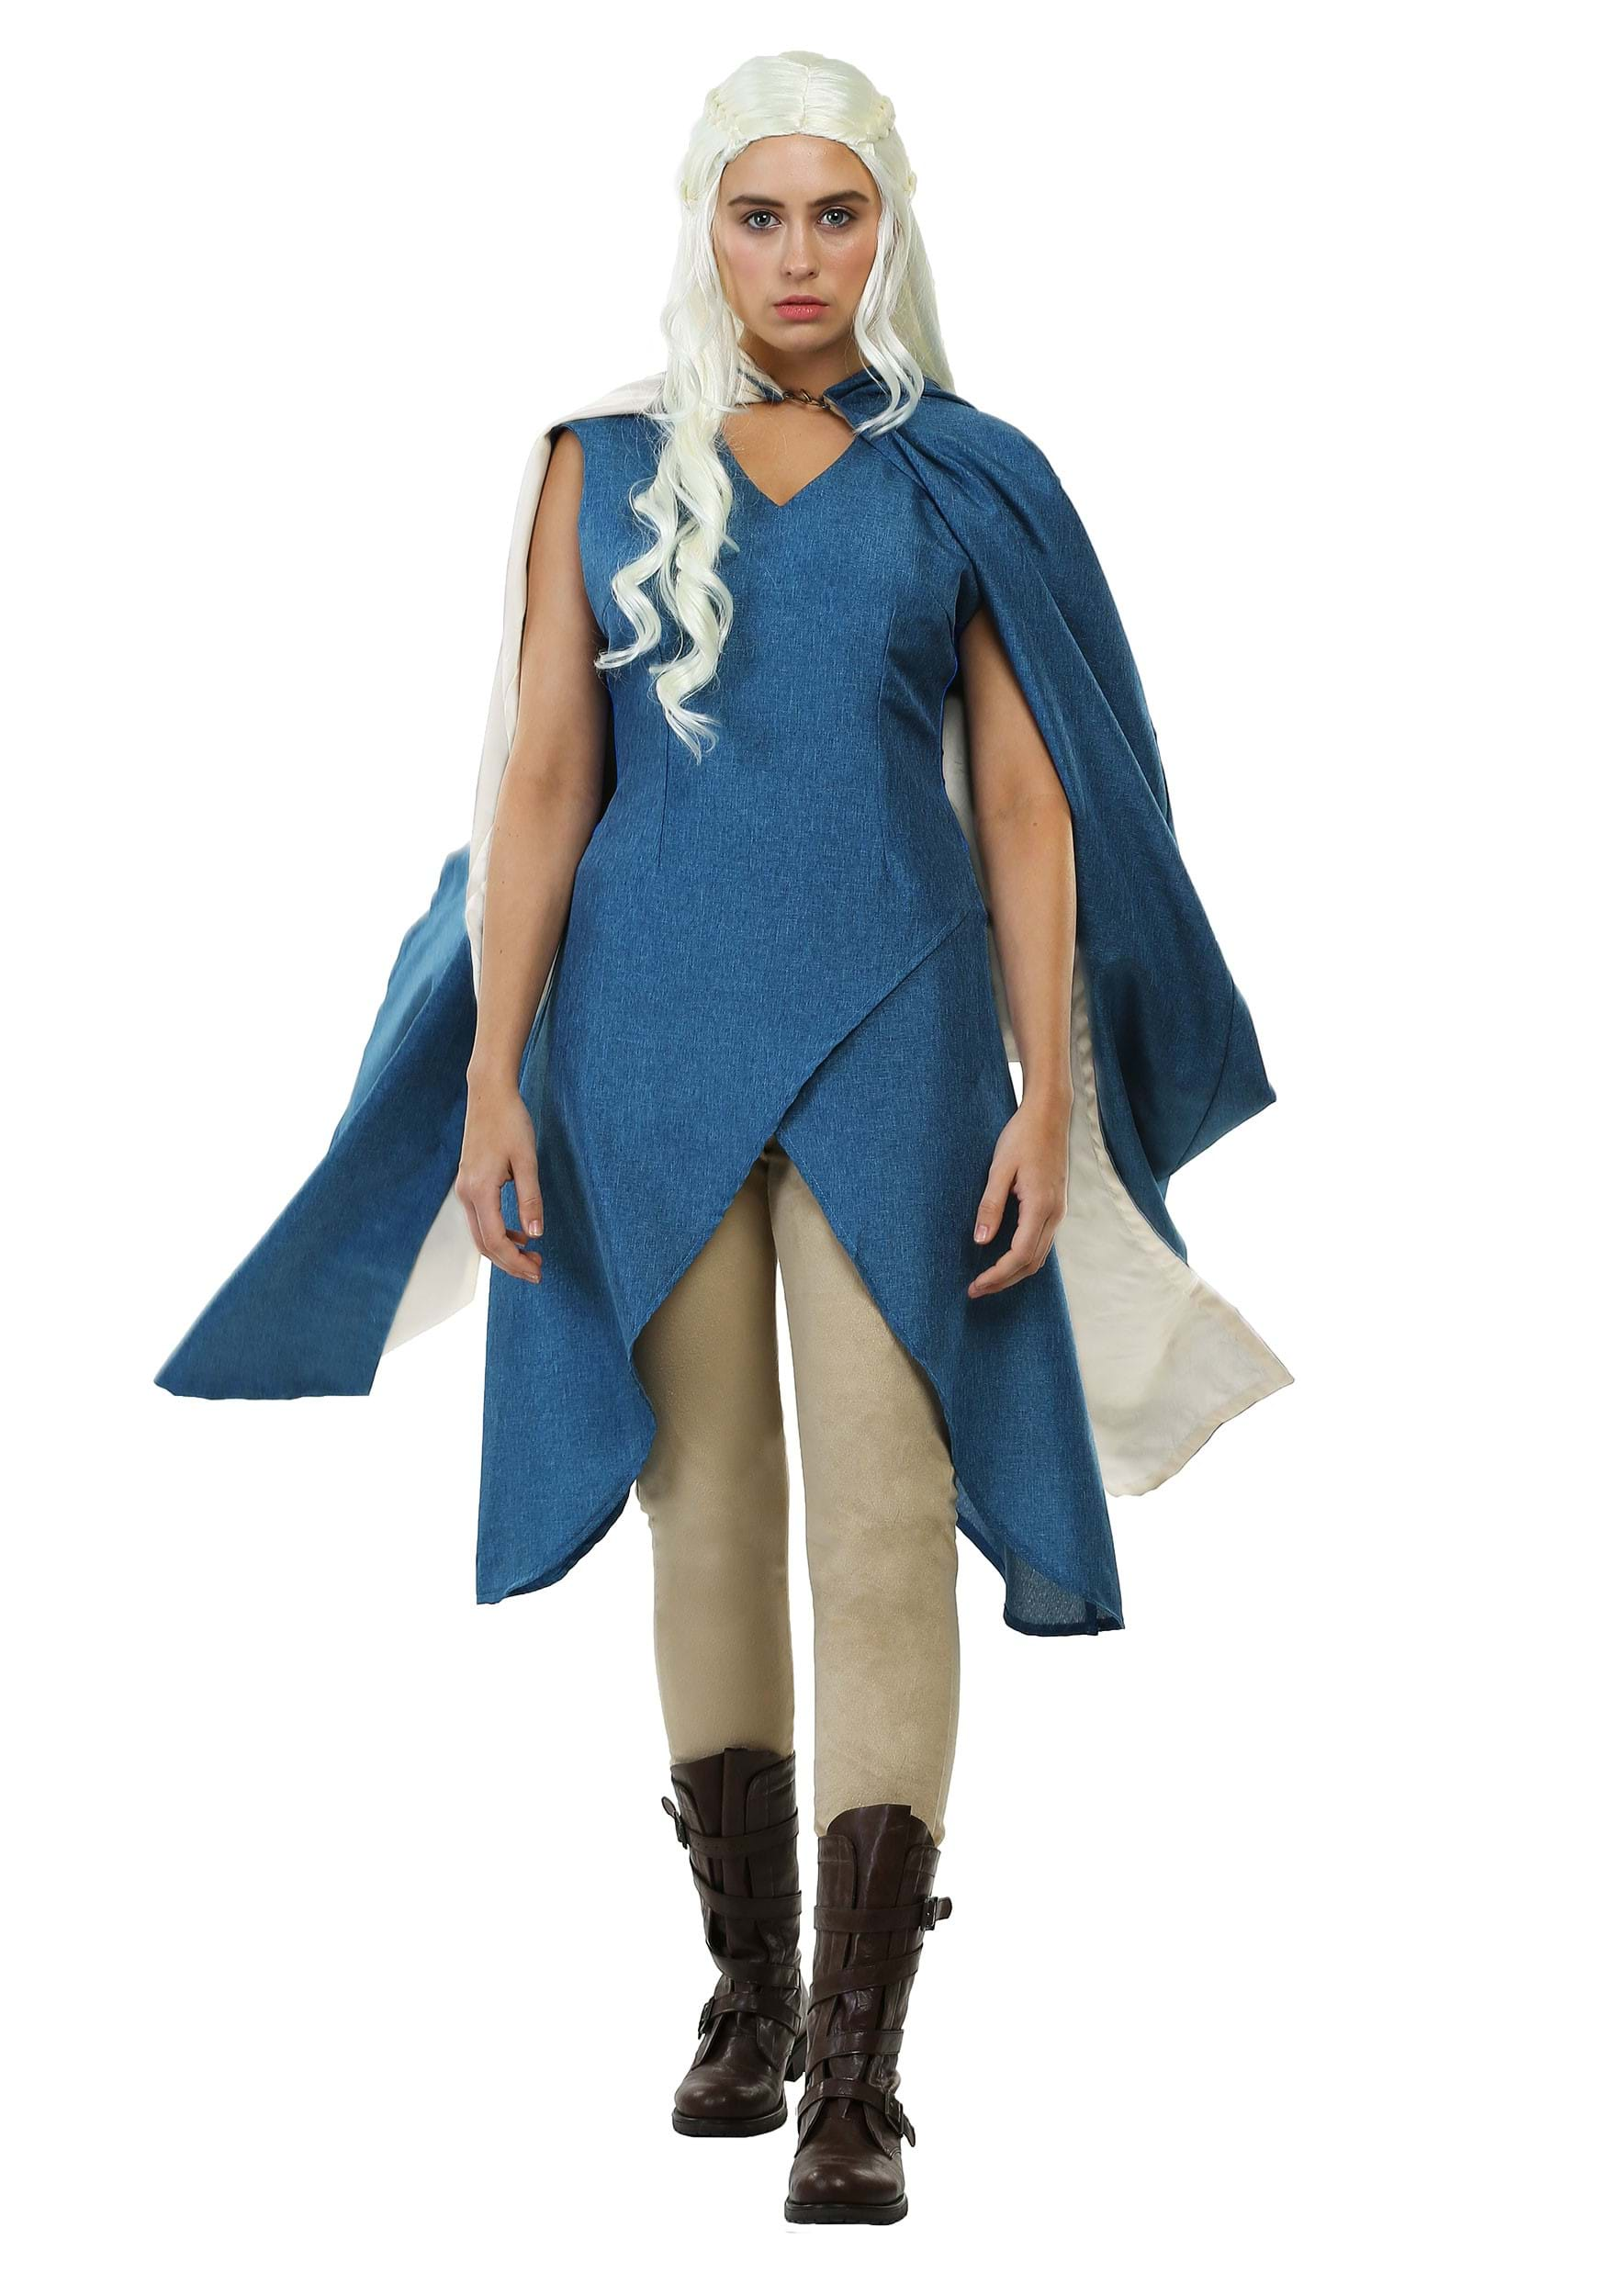 Game Of Thrones Halloween Costume 45249 | INFOVISUAL